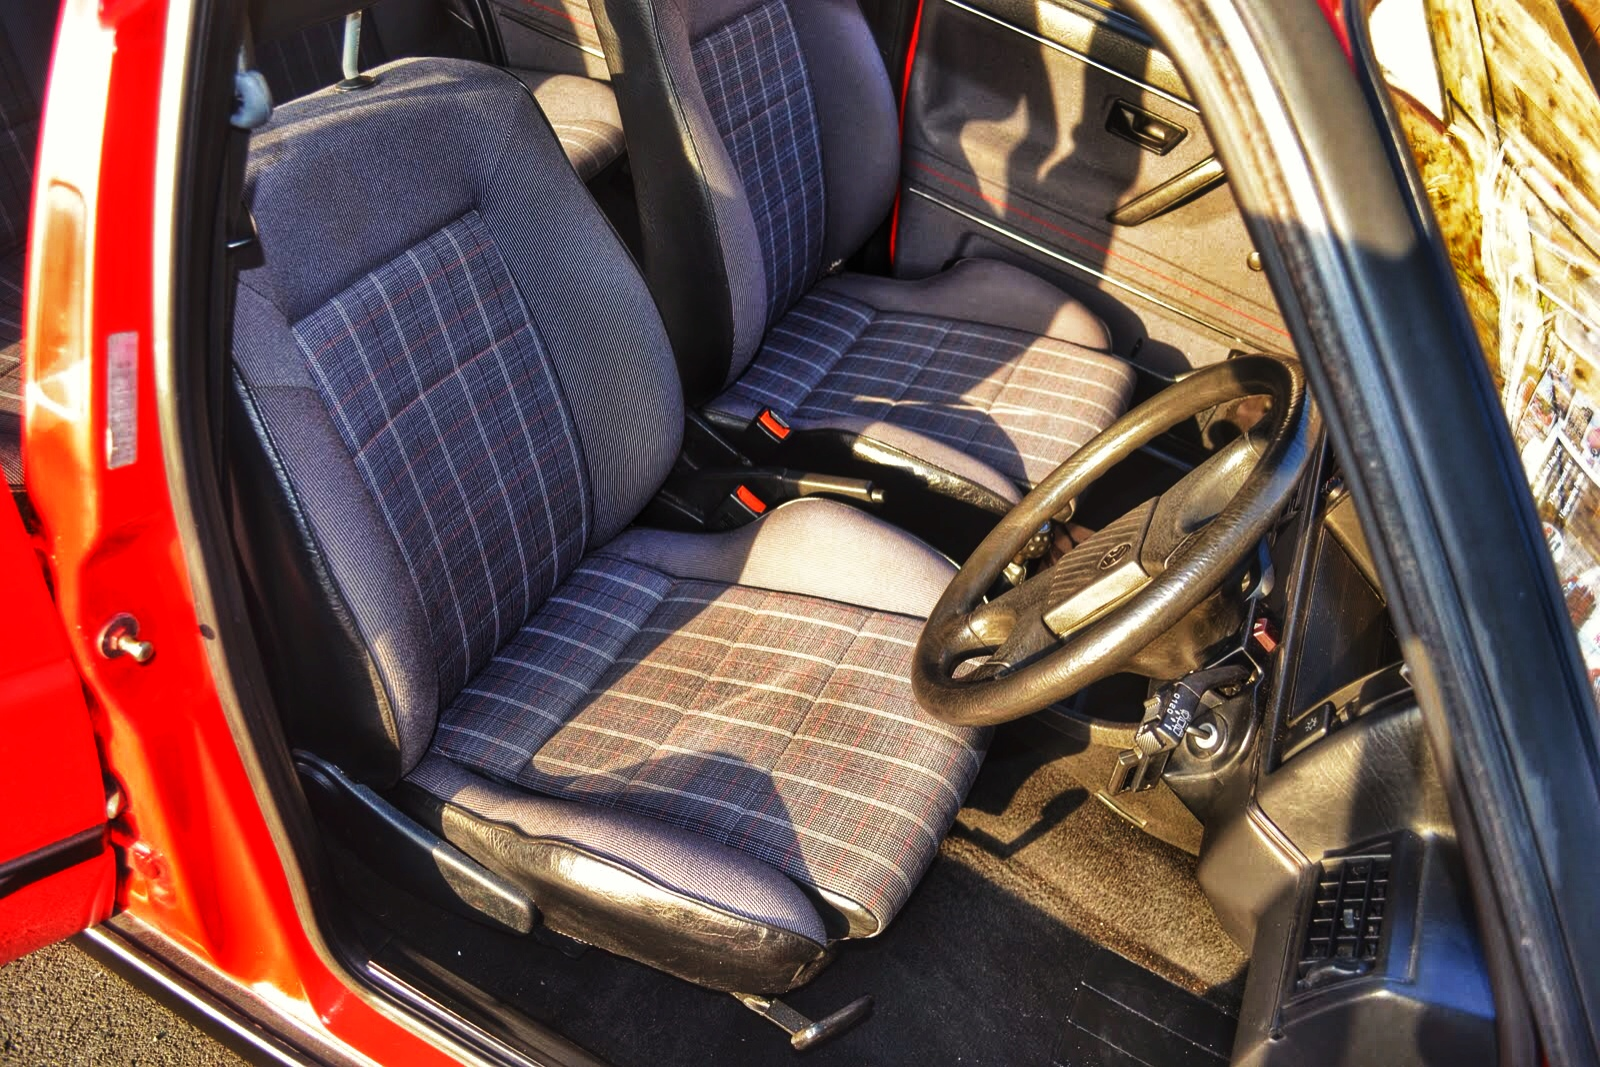 VW Golf Mk2 Gti 8v - Interior